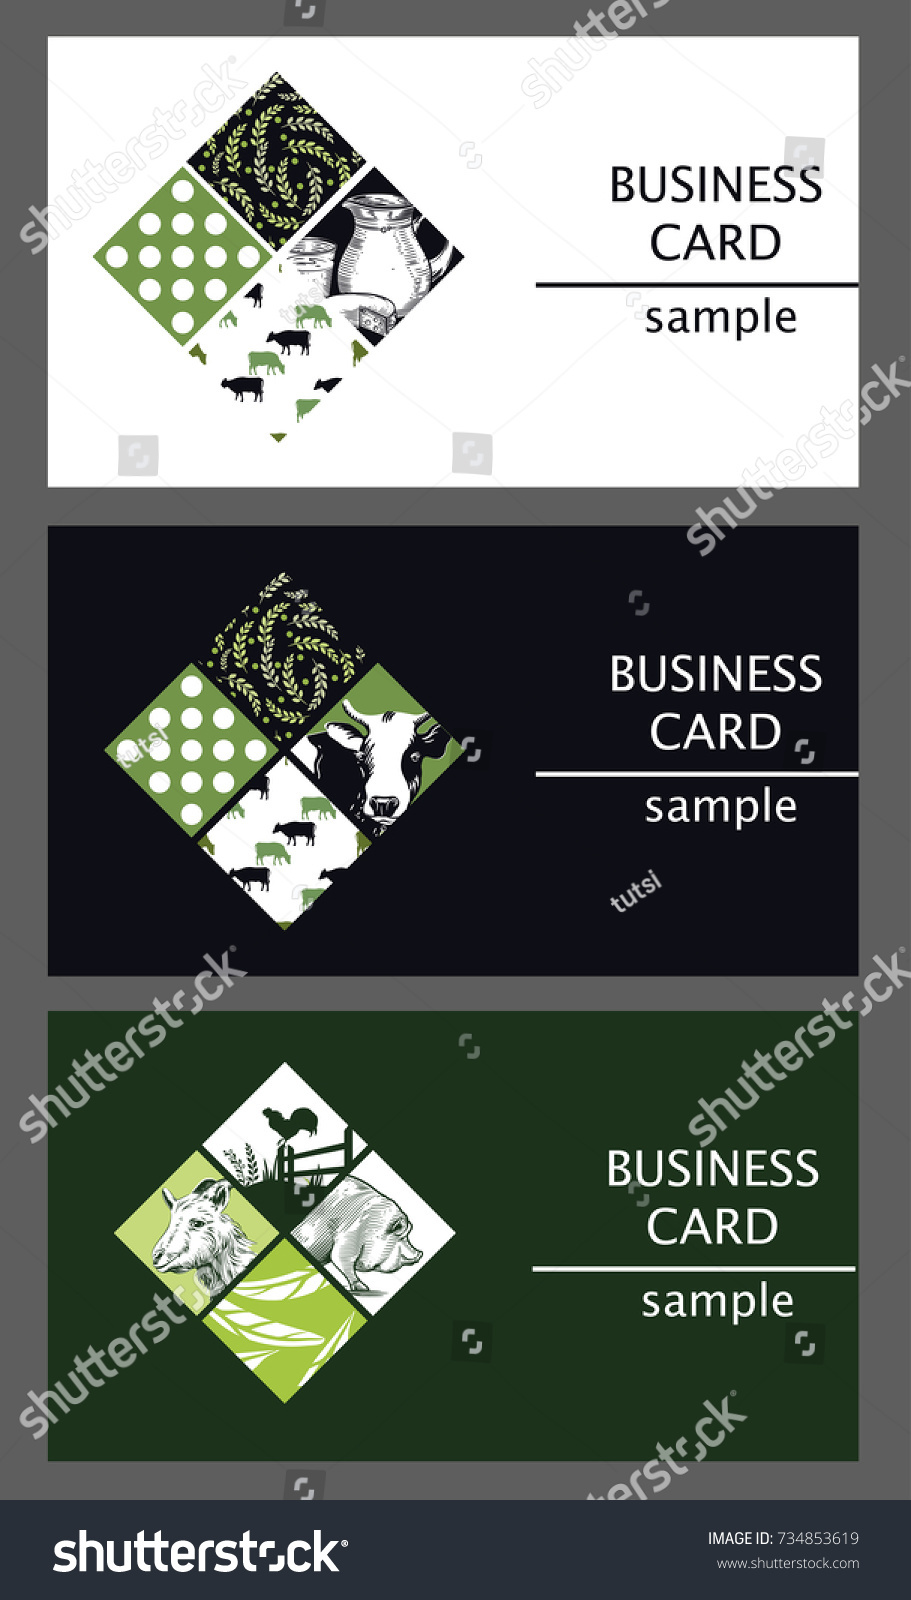 Templates business cards image farm animals stock vector 734853619 templates of business cards with the image of farm animals dairy products and plant ornaments magicingreecefo Choice Image